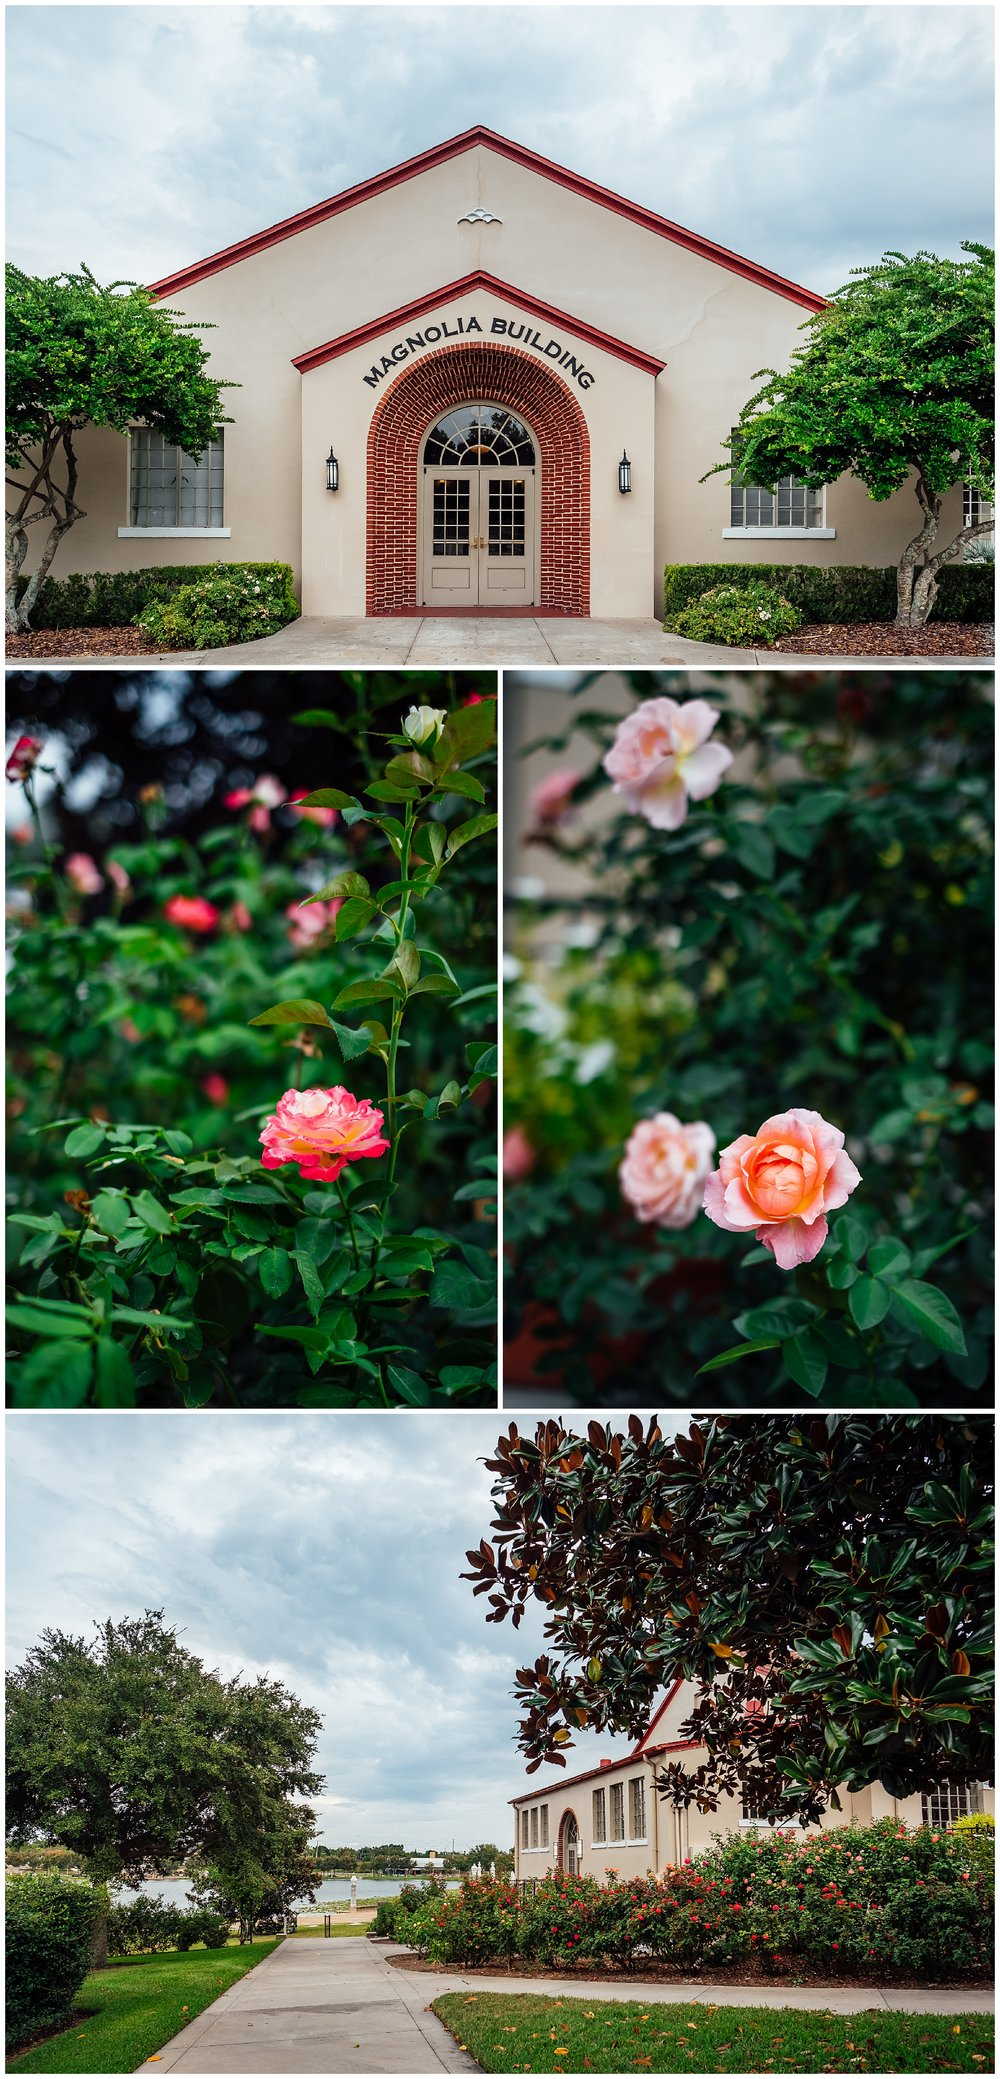 downtown-lakeland-wedding-terrace-hotel-mirror-lake-hollis-gardens-magnolia-building-rain_0001.jpg